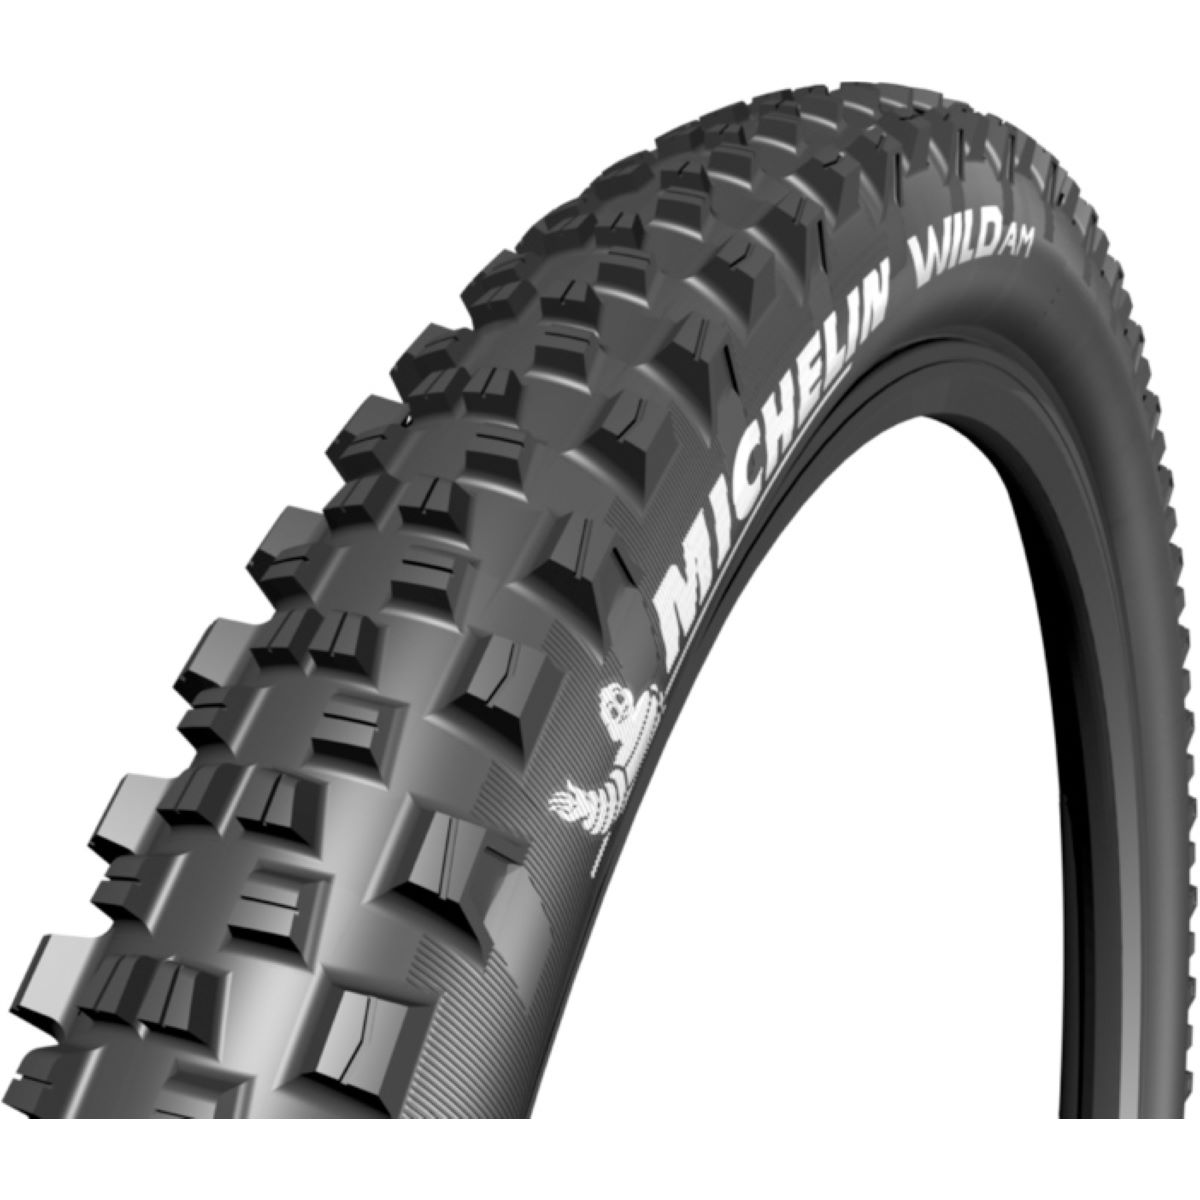 Pneu VTT Michelin Wild AM - 29' 2.35' Folding Be Noir